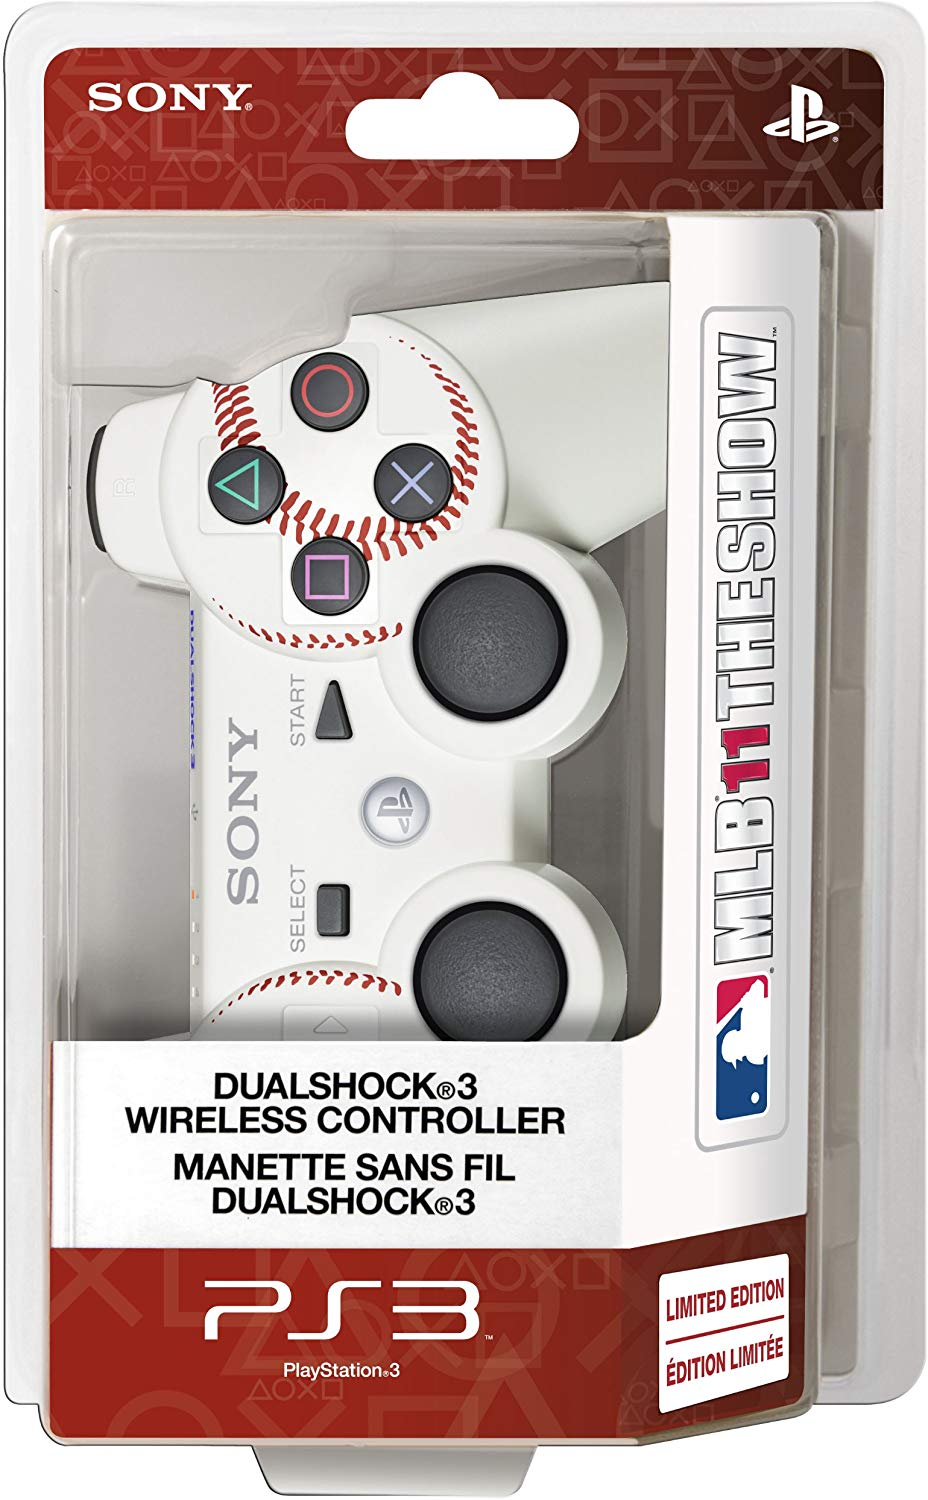 DualShock 3 Wireless Controller MLB 11 The Show Edition